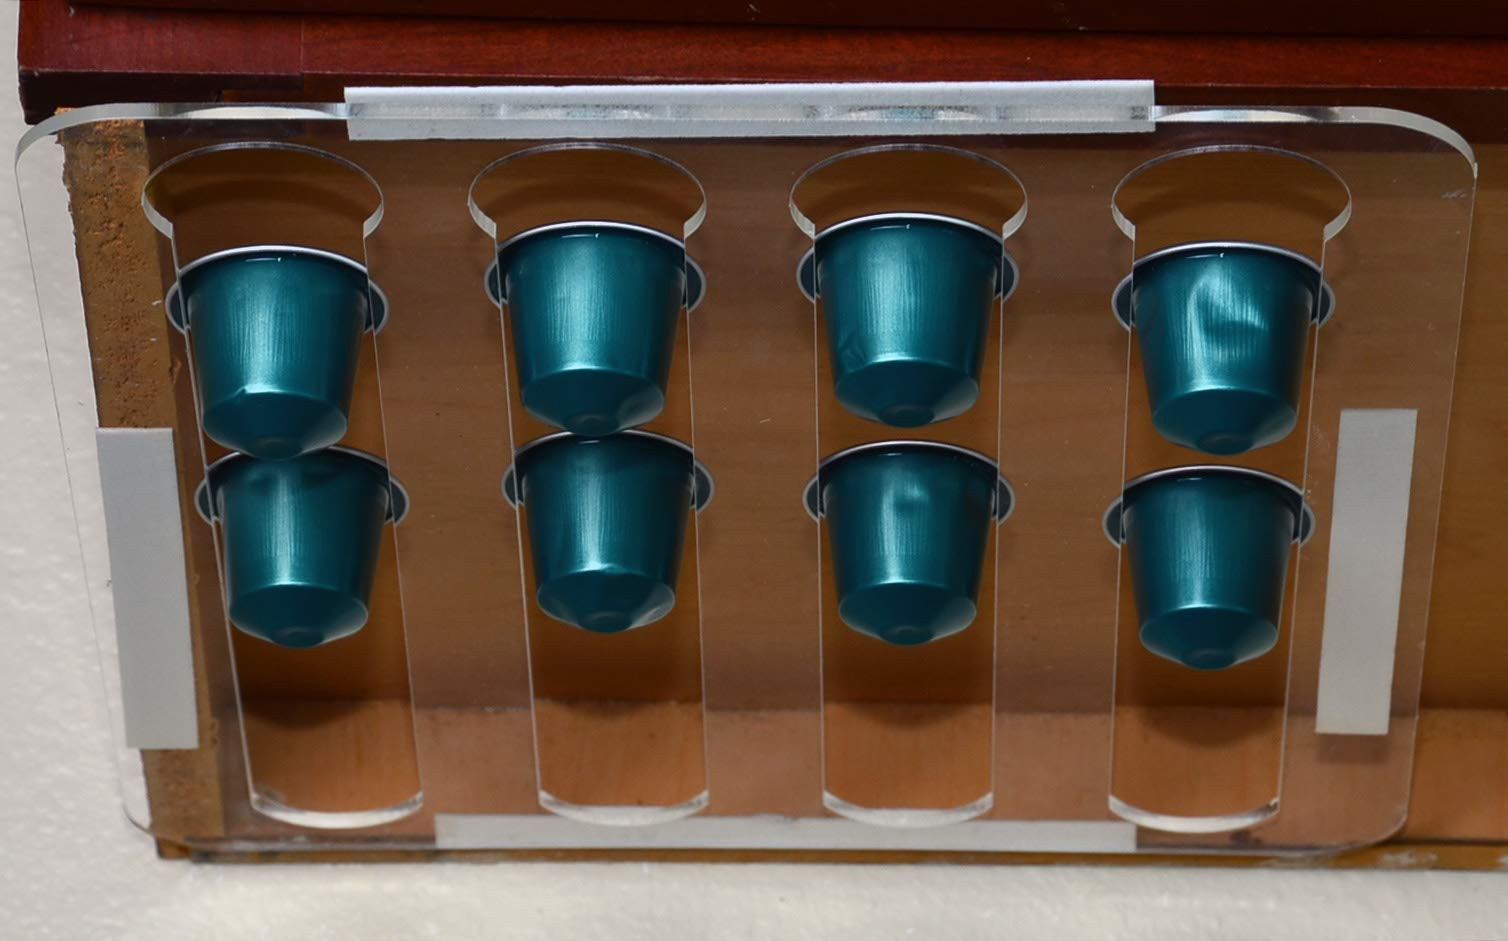 Marketing Holders Under Cabinets Coffee Pod Holder for Nespresso Lavazza Organizer Qty 6 by Marketing Holders (Image #4)